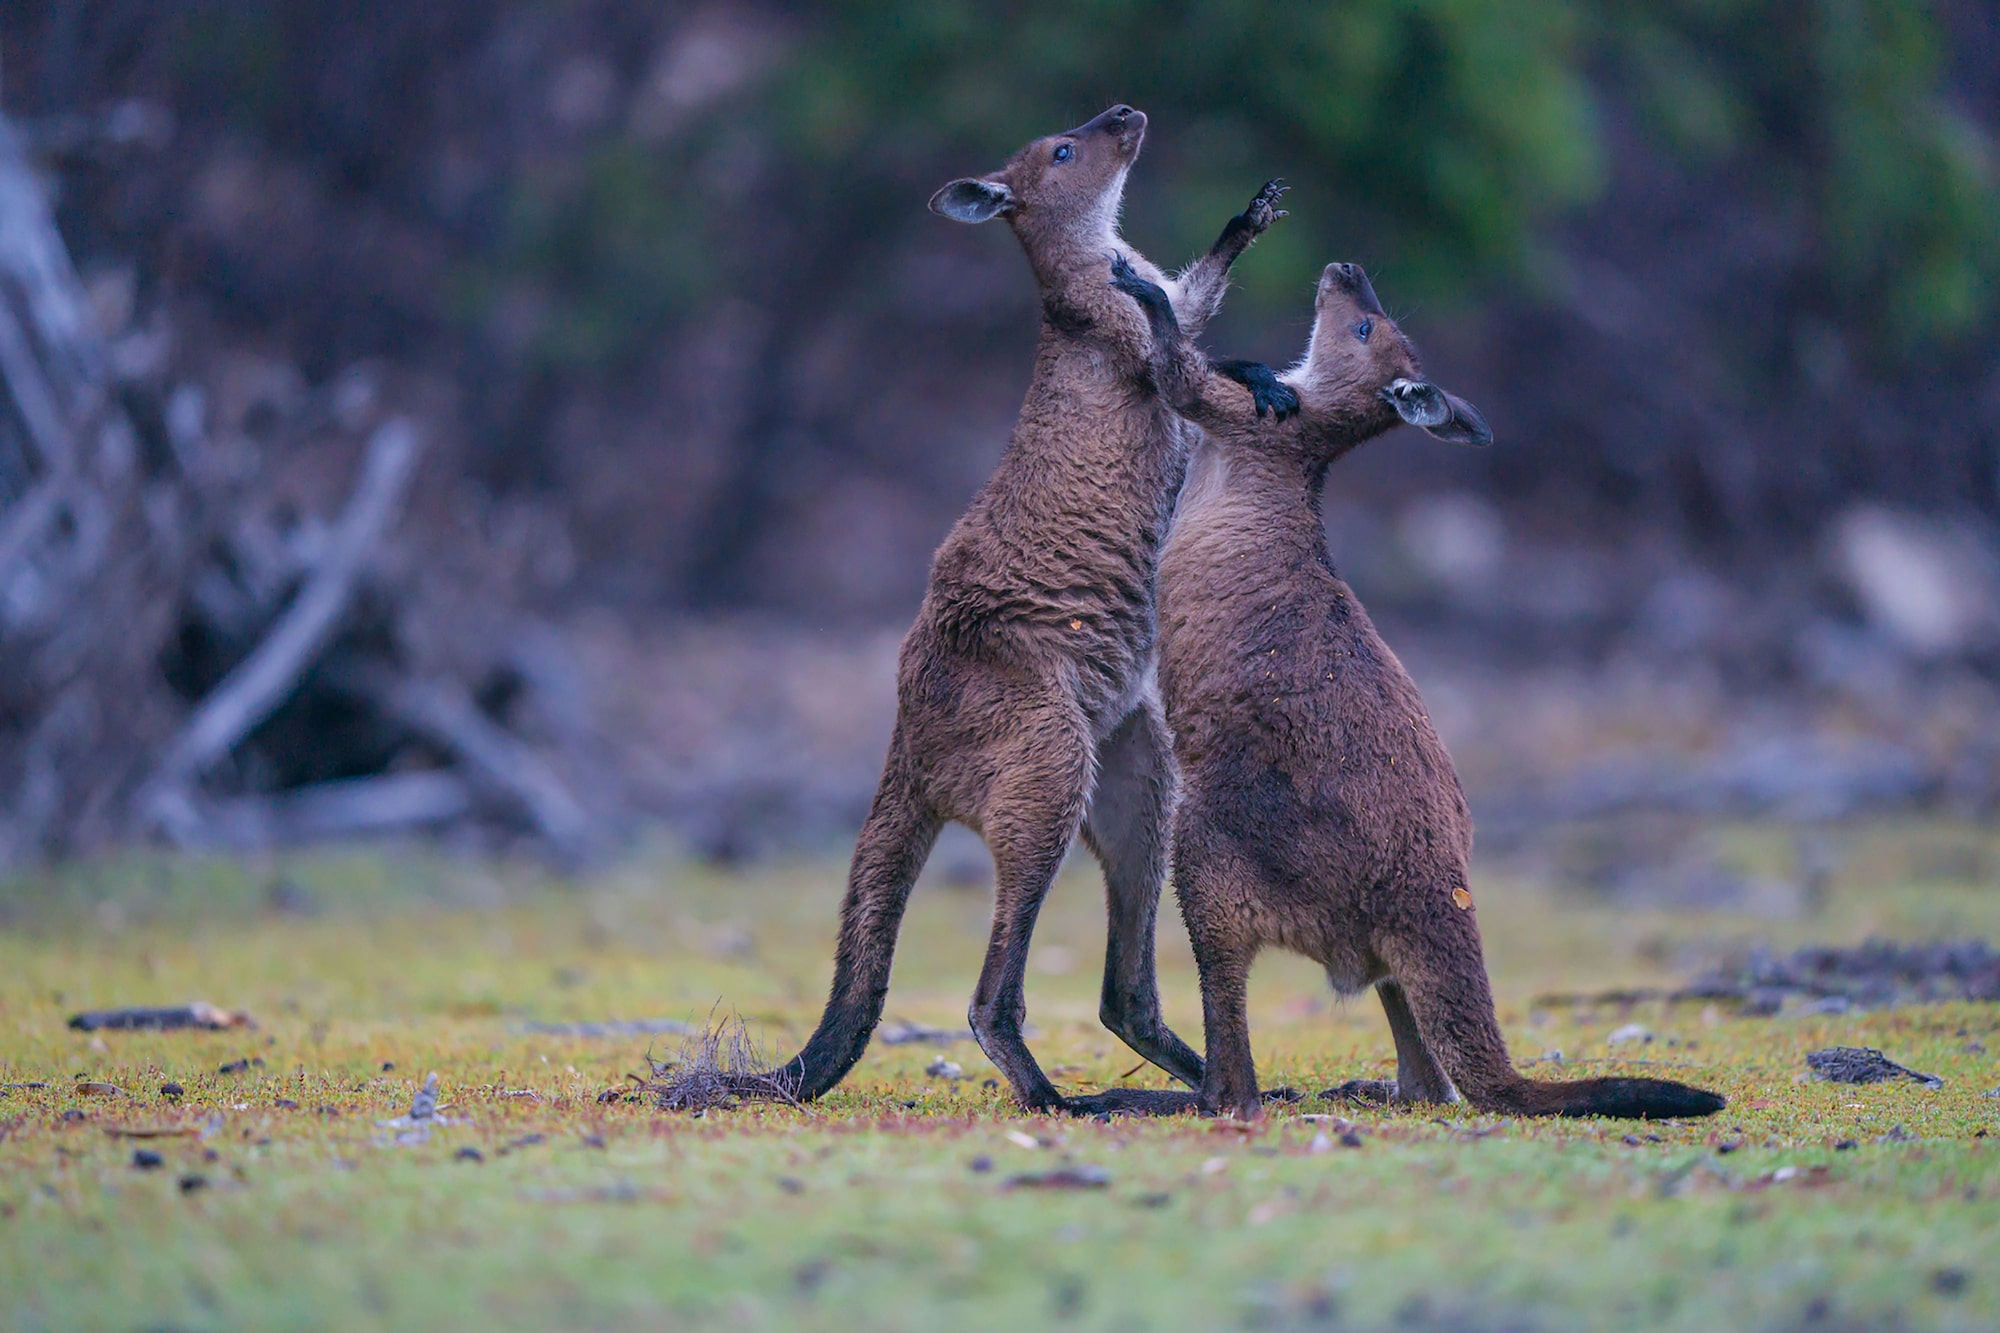 Image of wrestling joeys in Tasmania